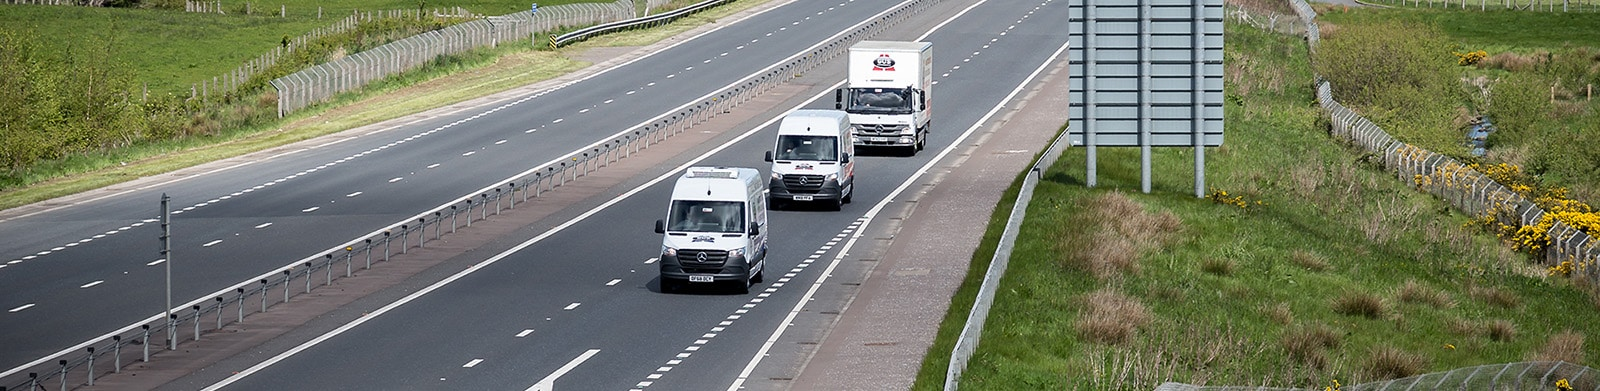 Three Gus Commercials hire vehicle being driven on roads in Northern Ireland